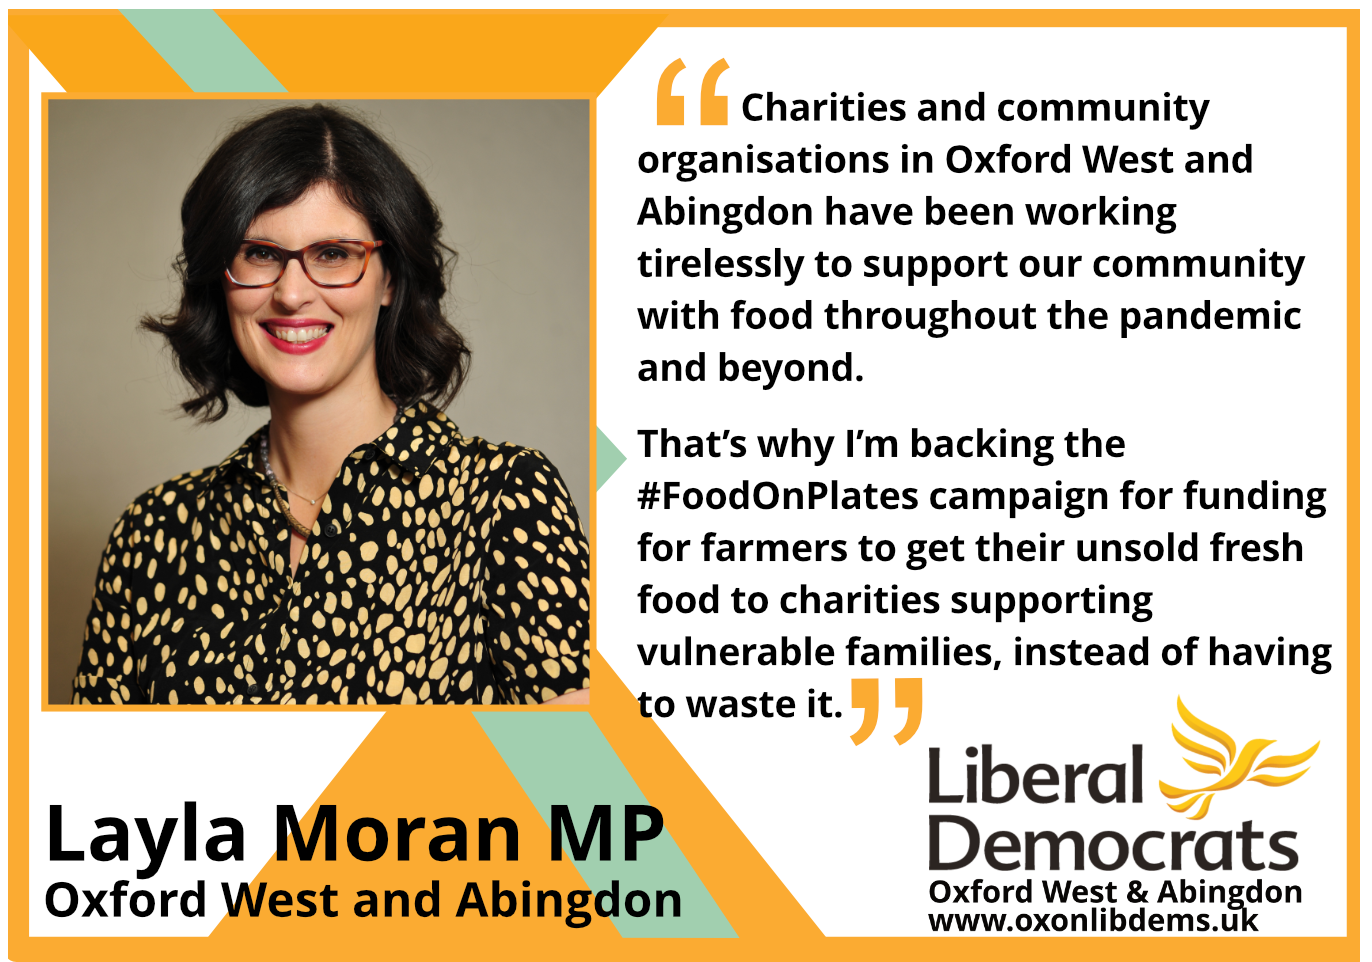 key_Charities and community organisations in Oxford West and Abingdon have been working tirelessly to support our community with food throughout the pandemic and beyond. That's why I'm backing the #FoodOnPlates campaign for funding for farmers to get their unsold fresh food to charities supporting vulnerable families, instead of having to waste it.